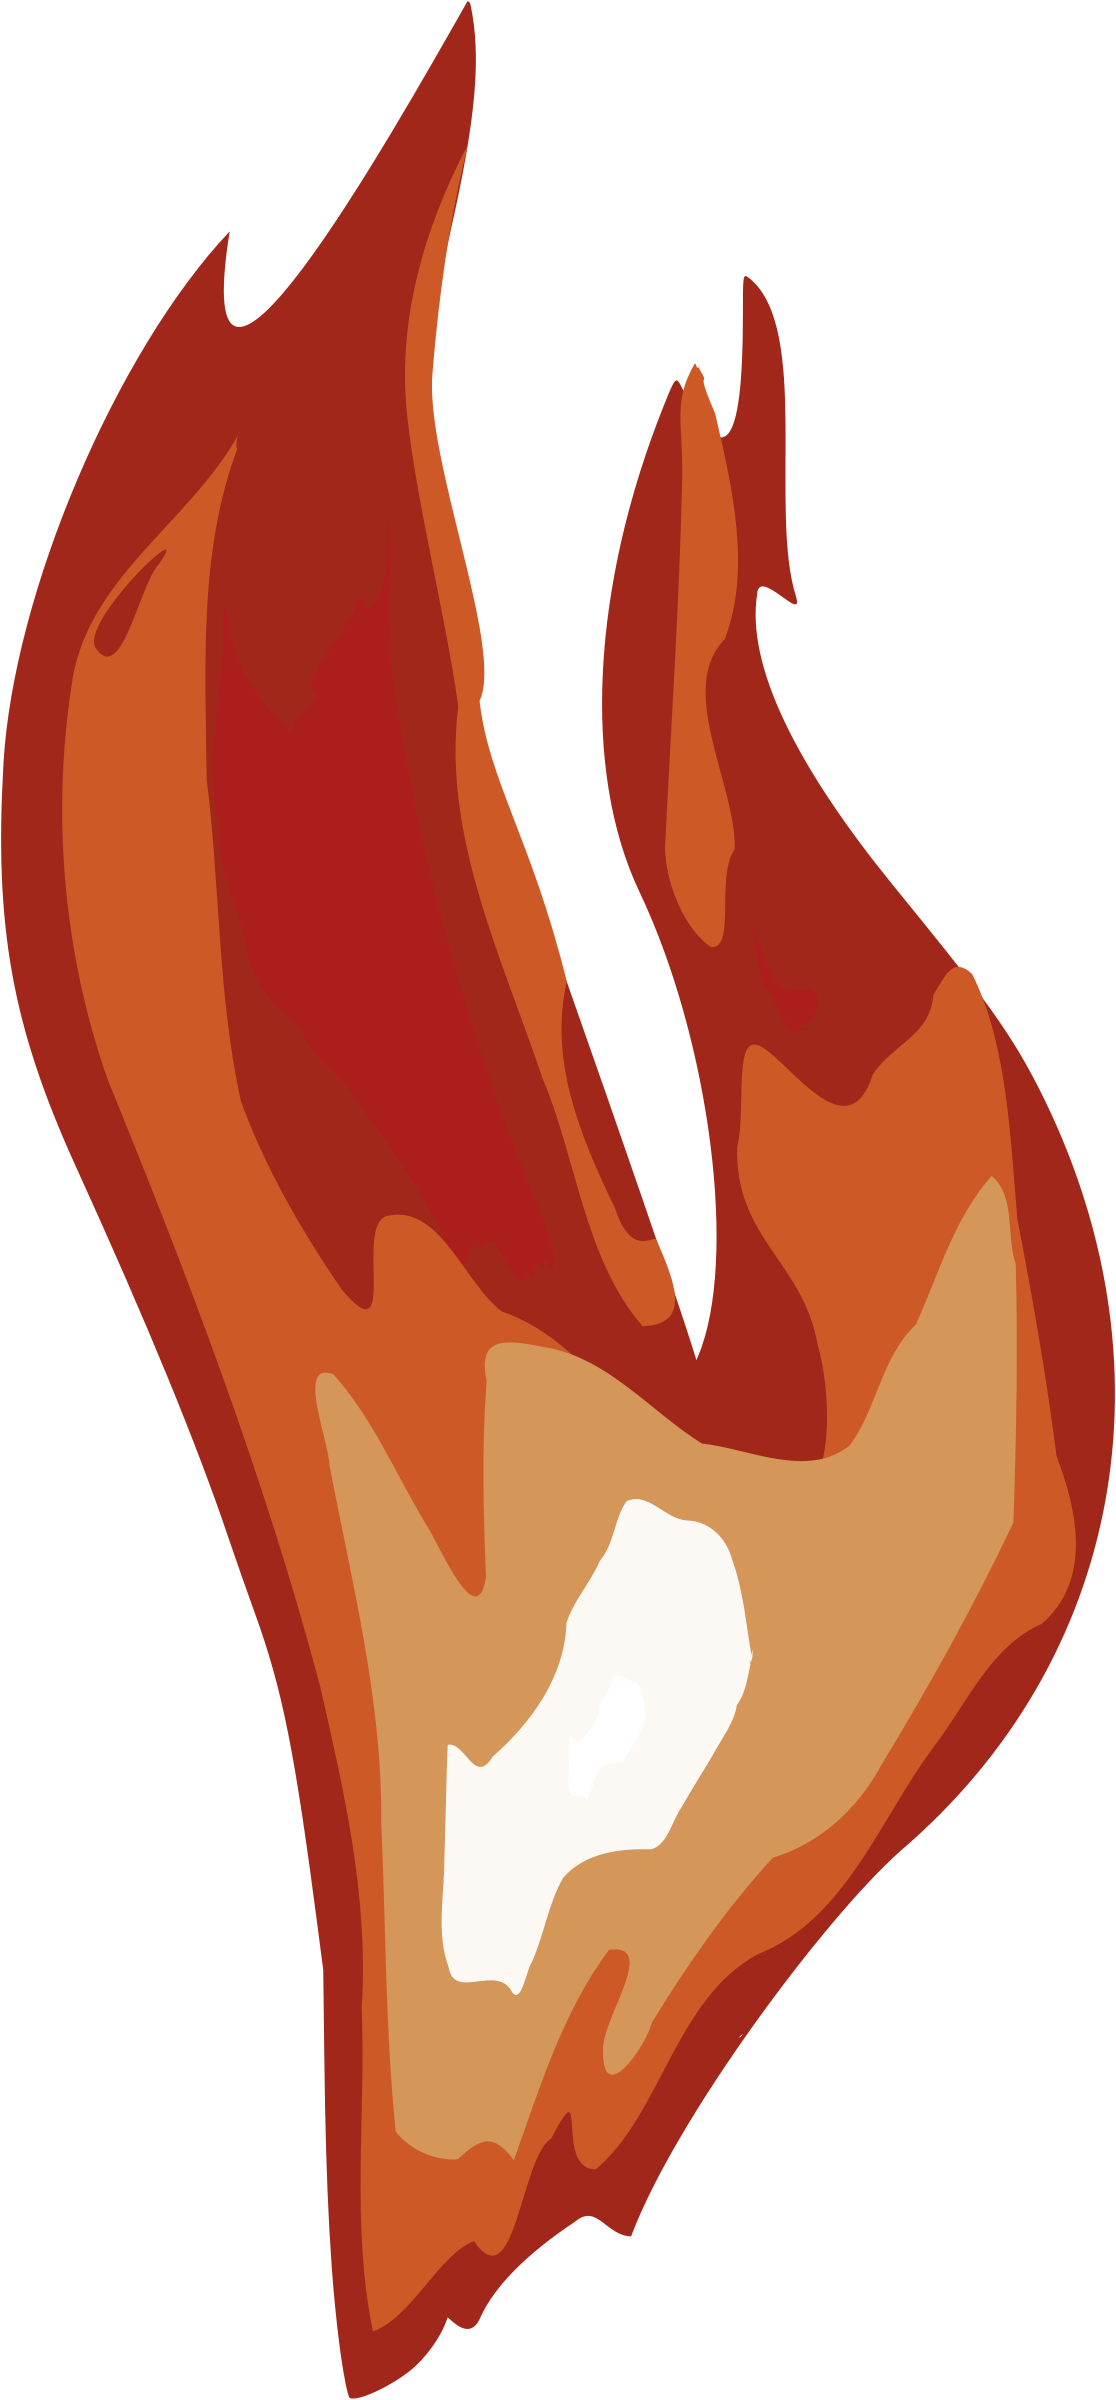 Flames clipart tongue. Flame small pencil and